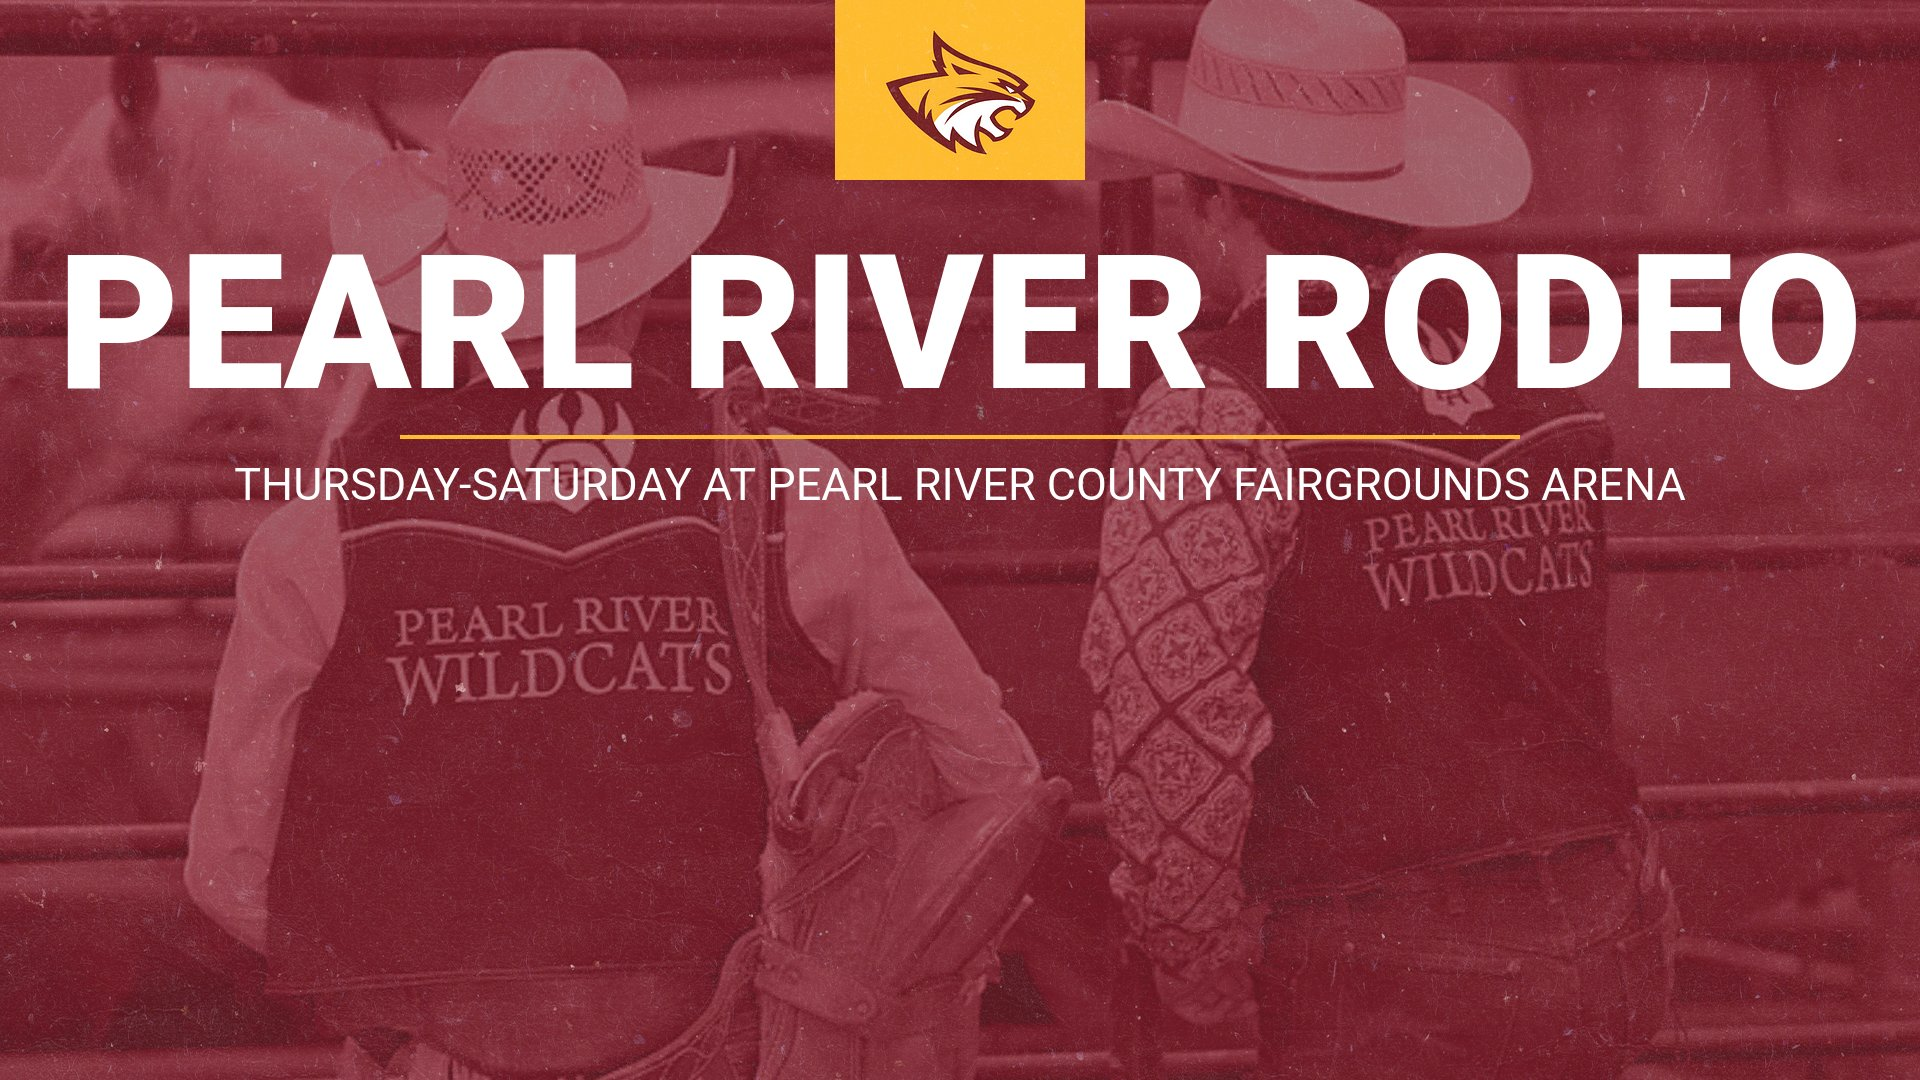 Pearl River hopes to thrill fans with rare Poplarville rodeo